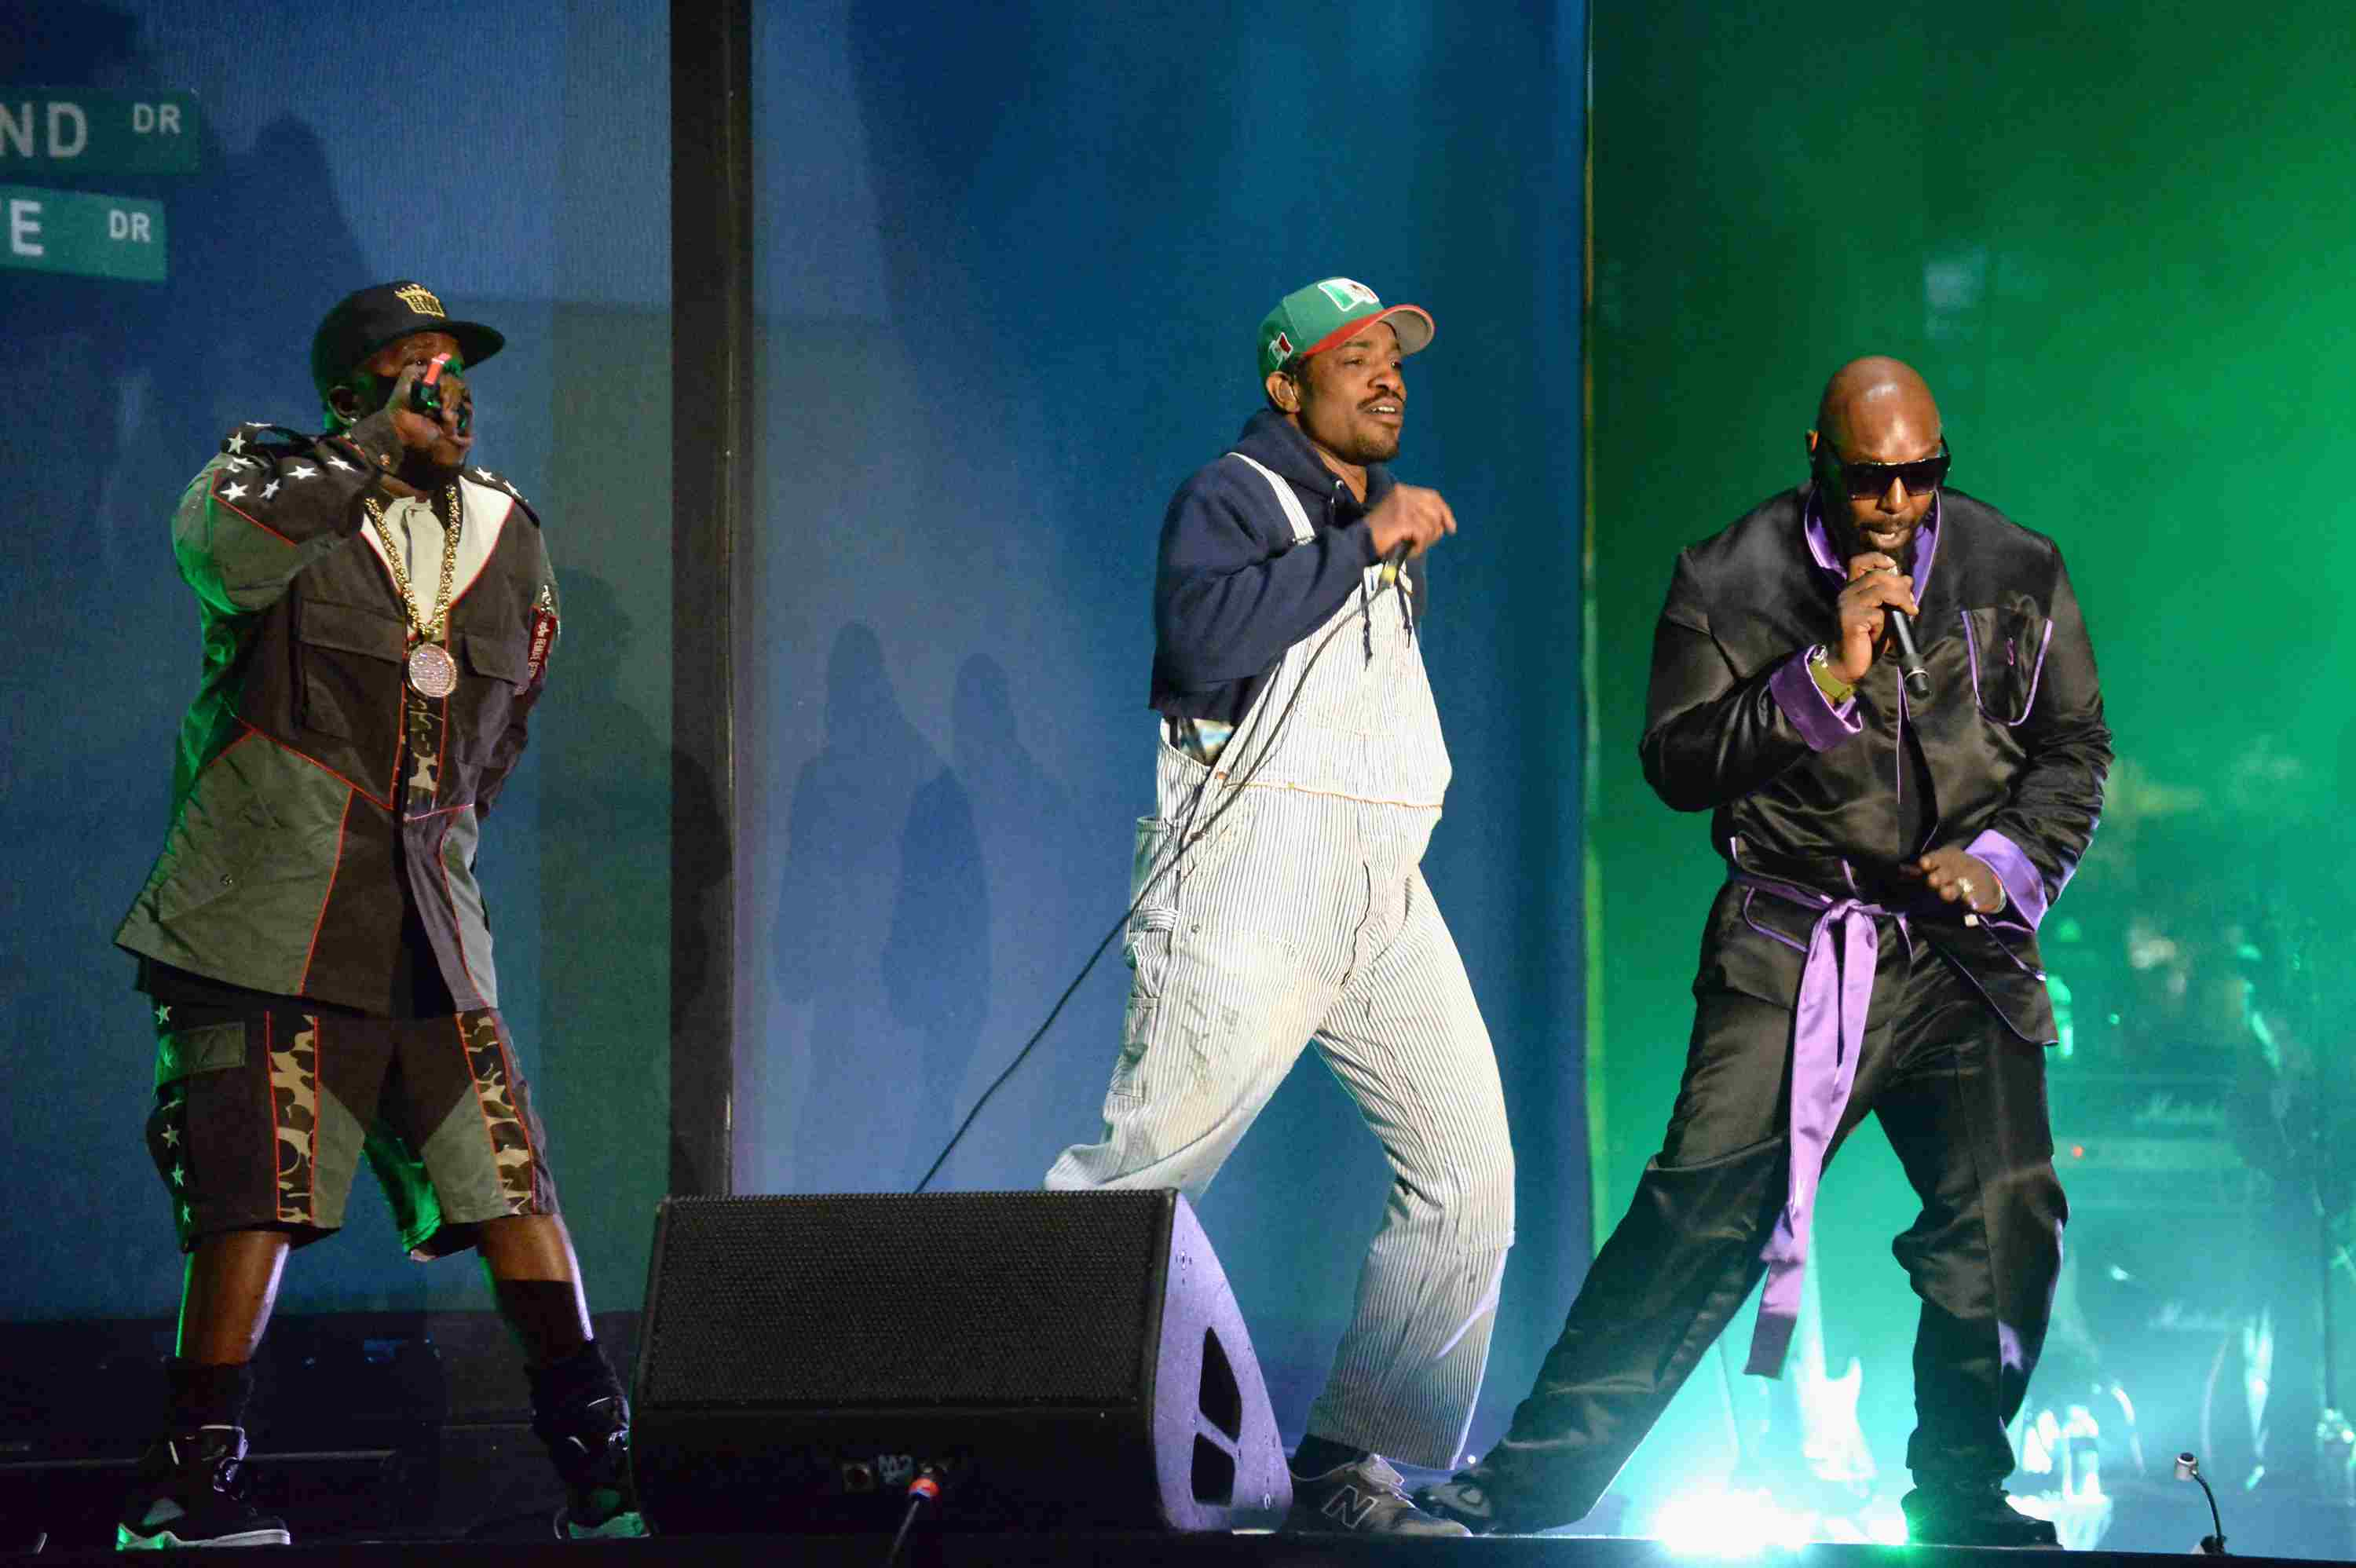 Big Boi and Andre 3000 of Outkast perform onstage with Sleepy Brown